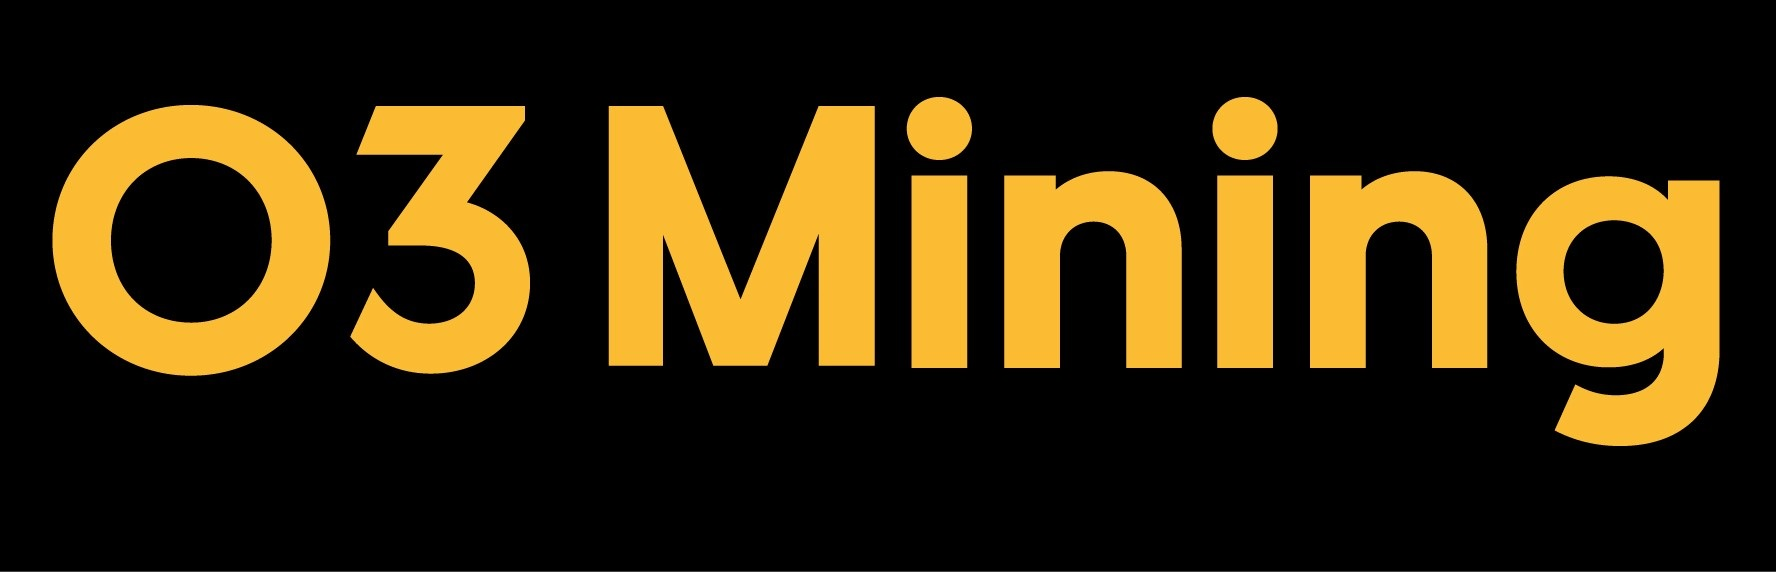 O3 Mining Increases Drill Program by 100,000 metres